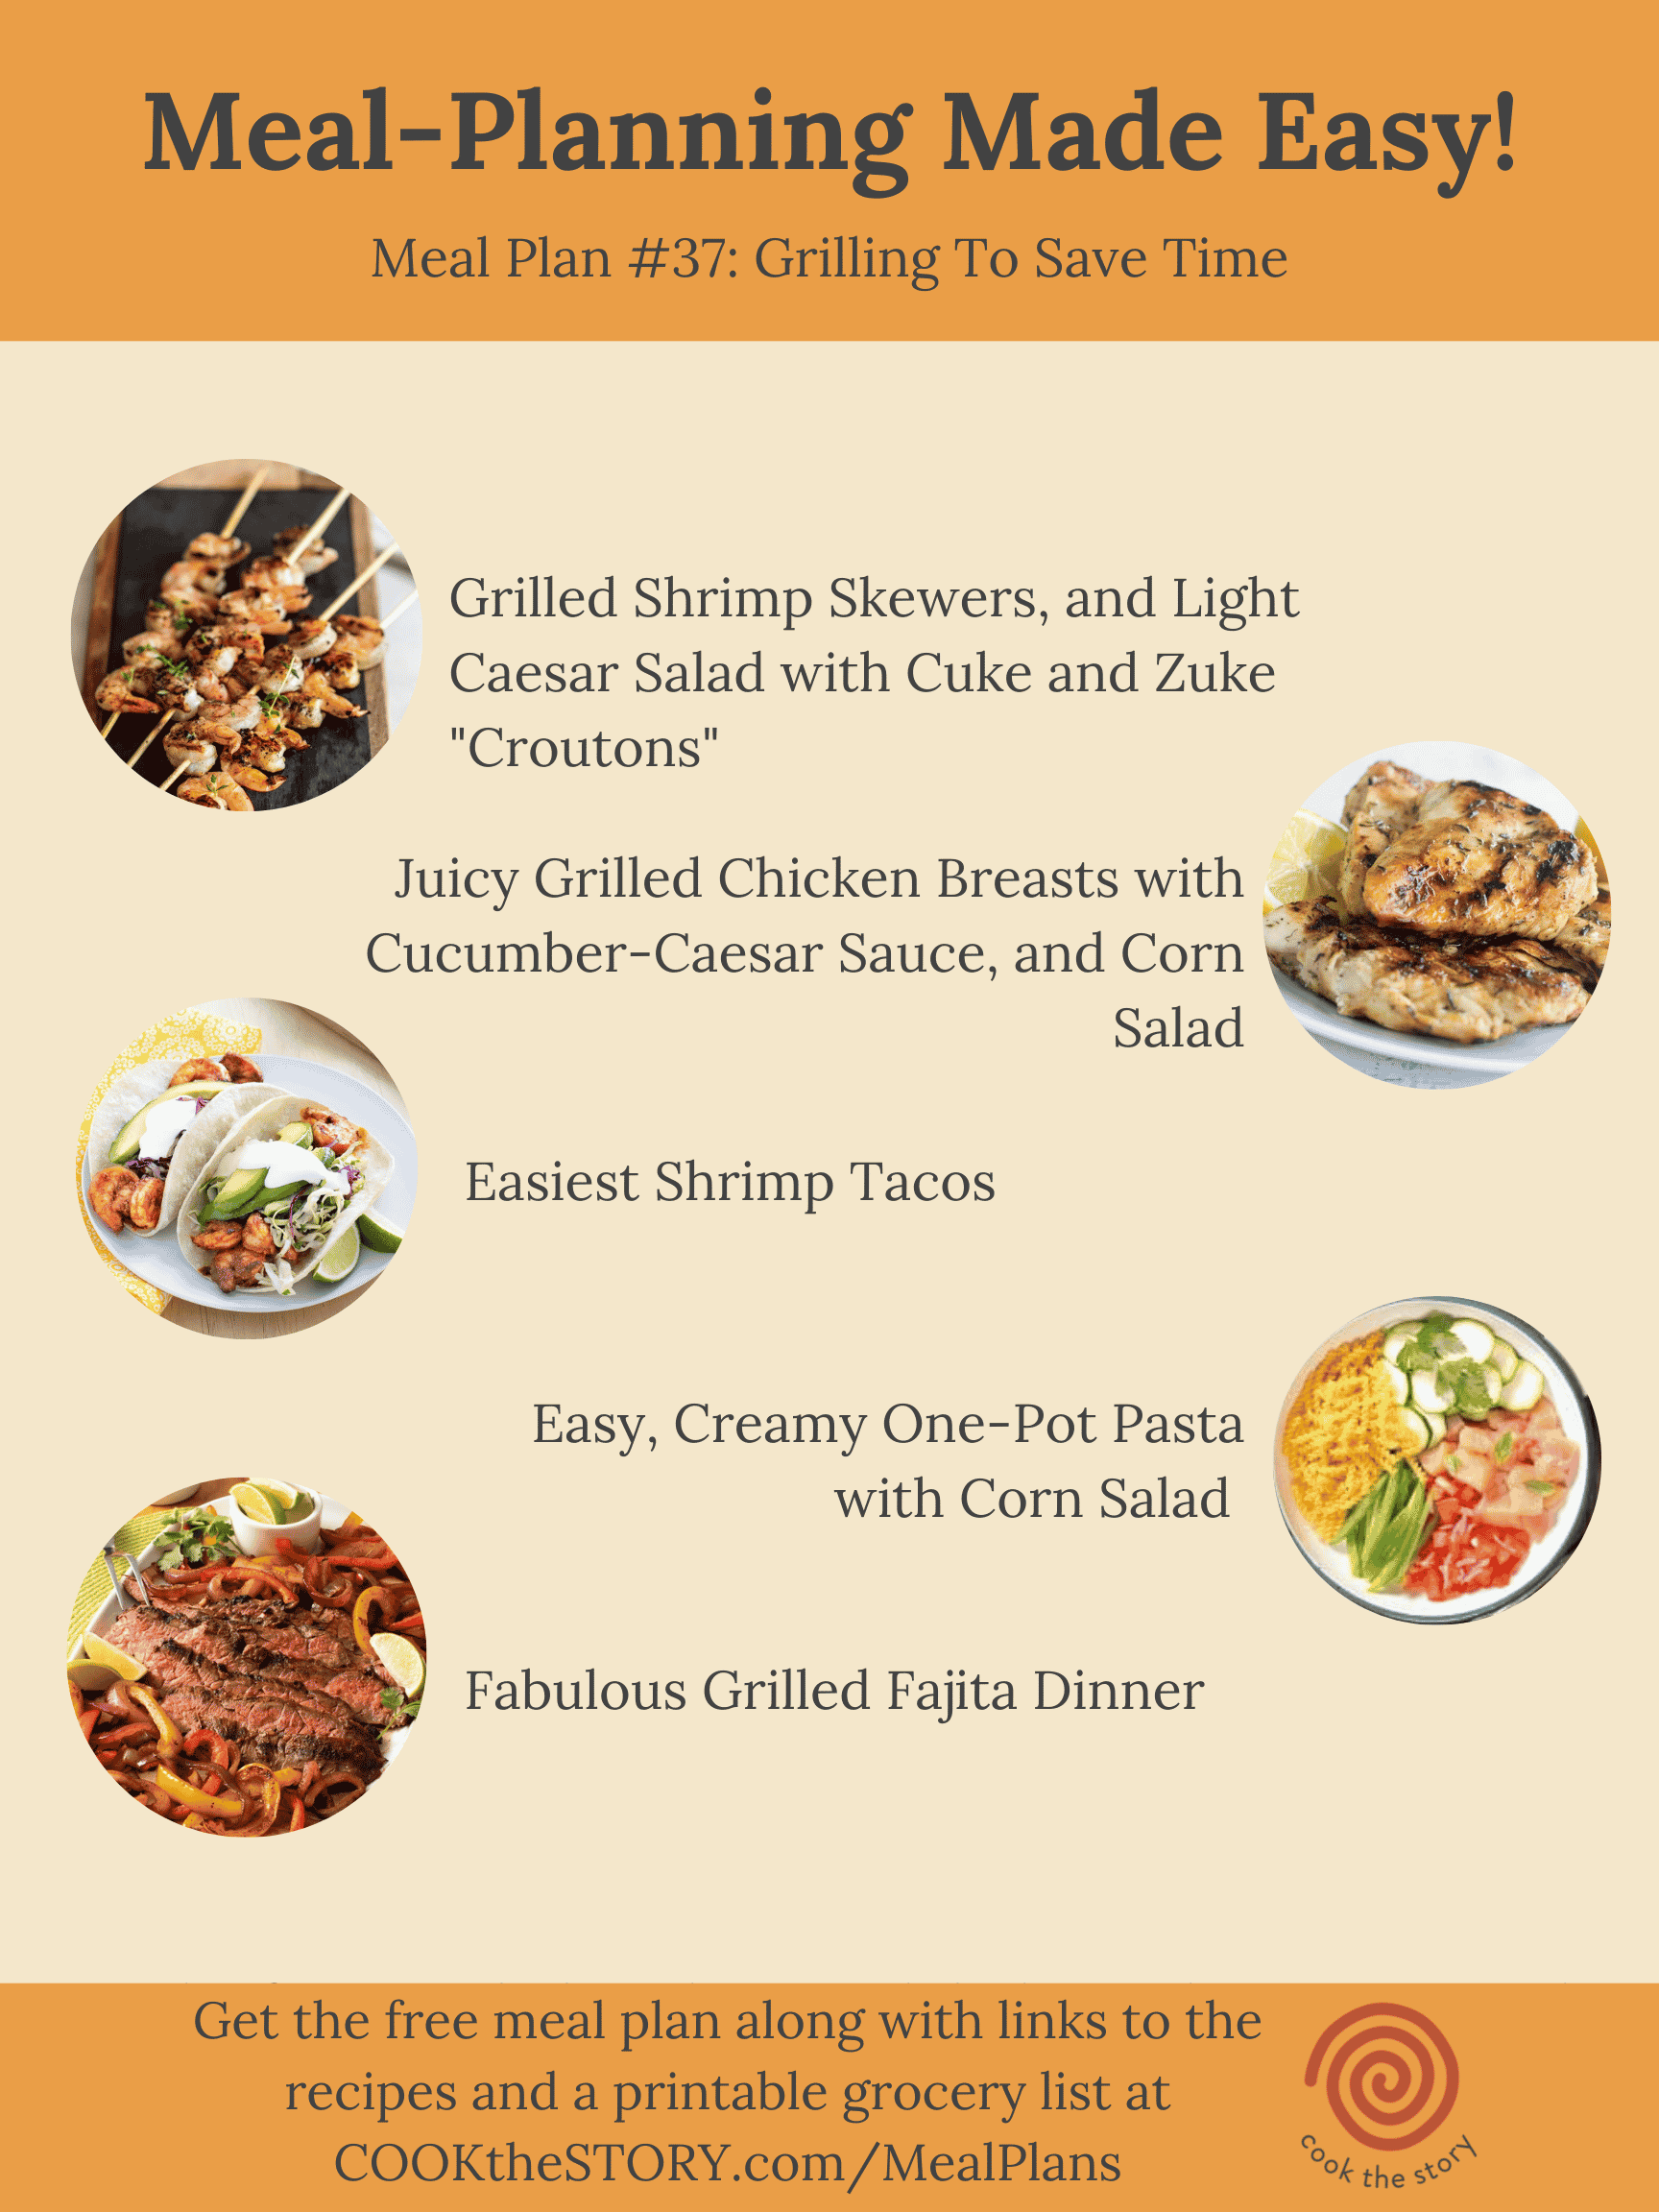 Meal Plan #37: Grilling To Save Time